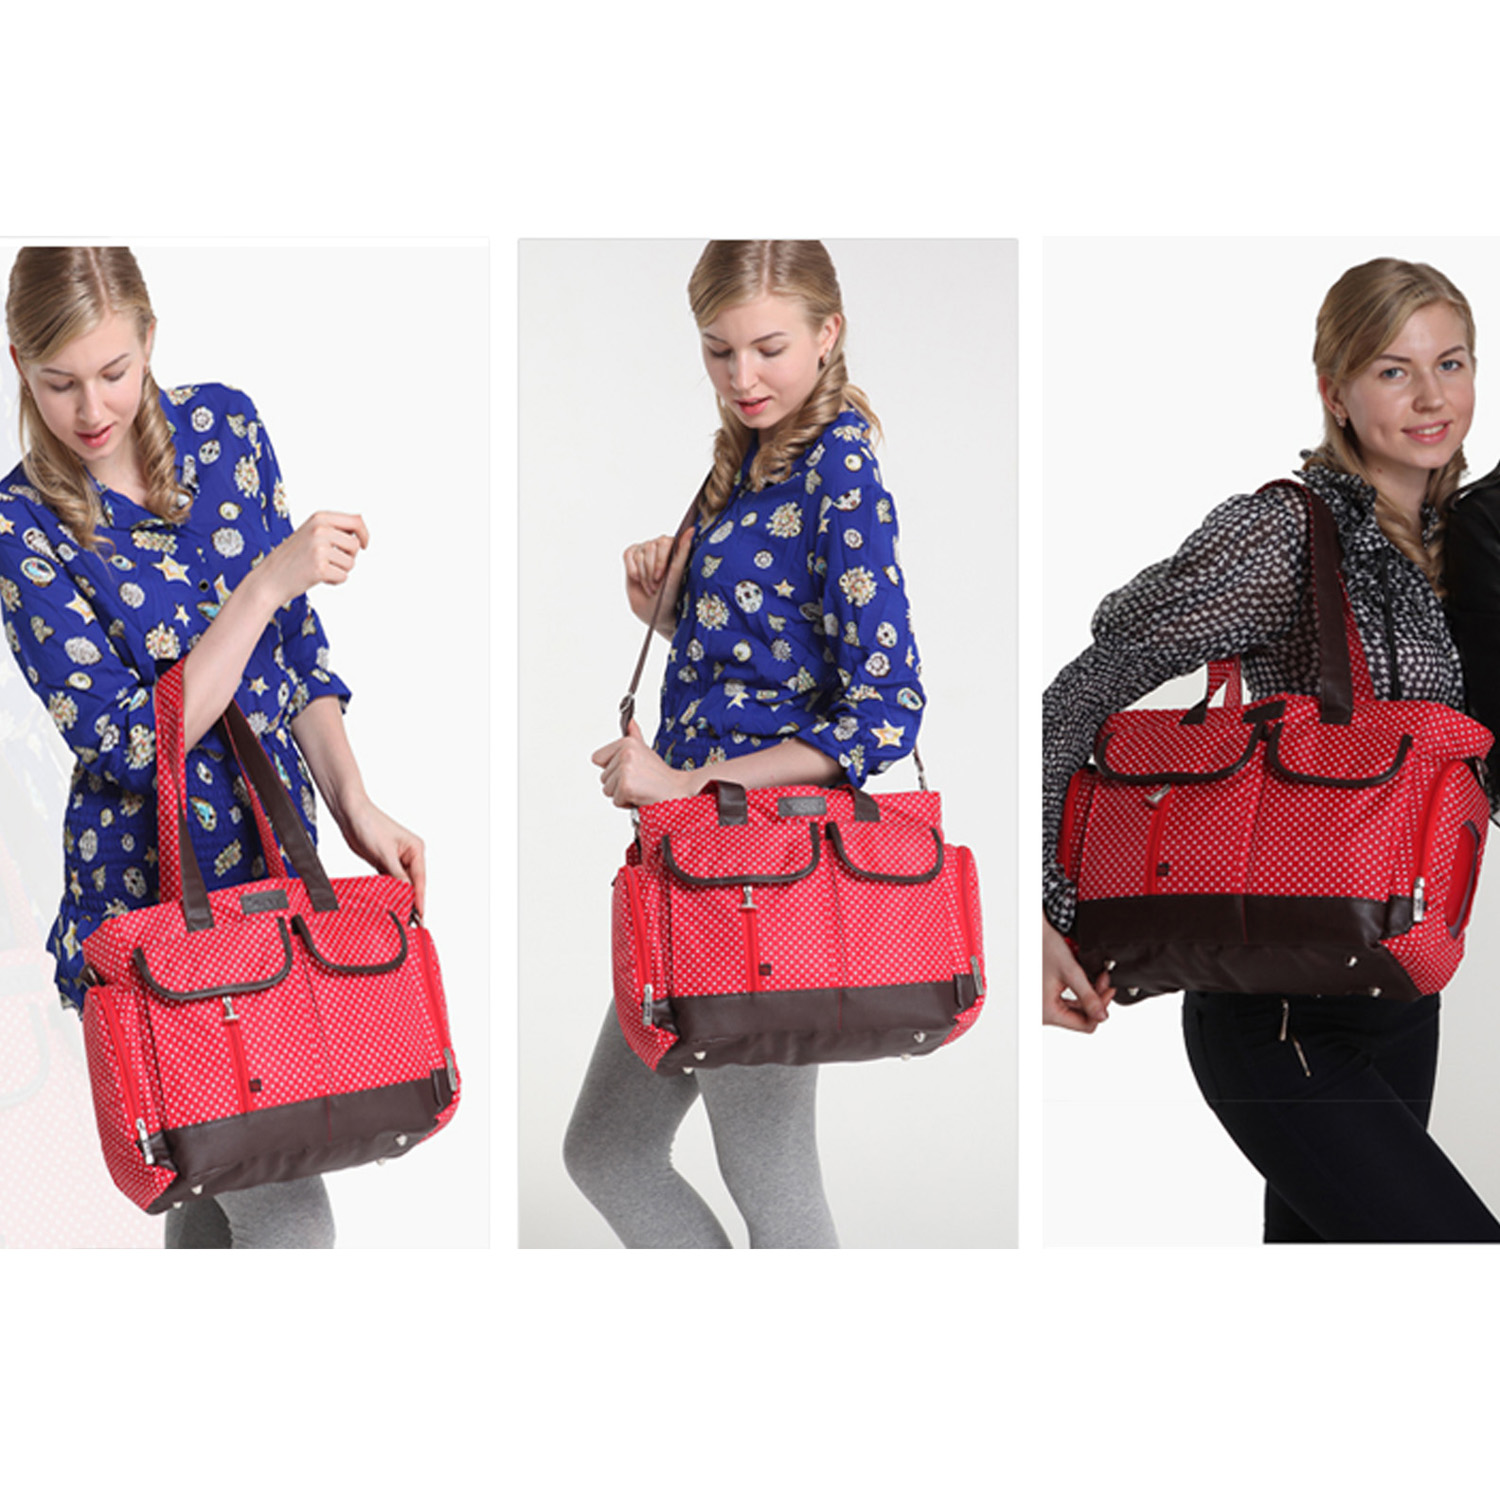 baby changing bag nappy diaper bags insulated wipe case 6pcs red ebay. Black Bedroom Furniture Sets. Home Design Ideas